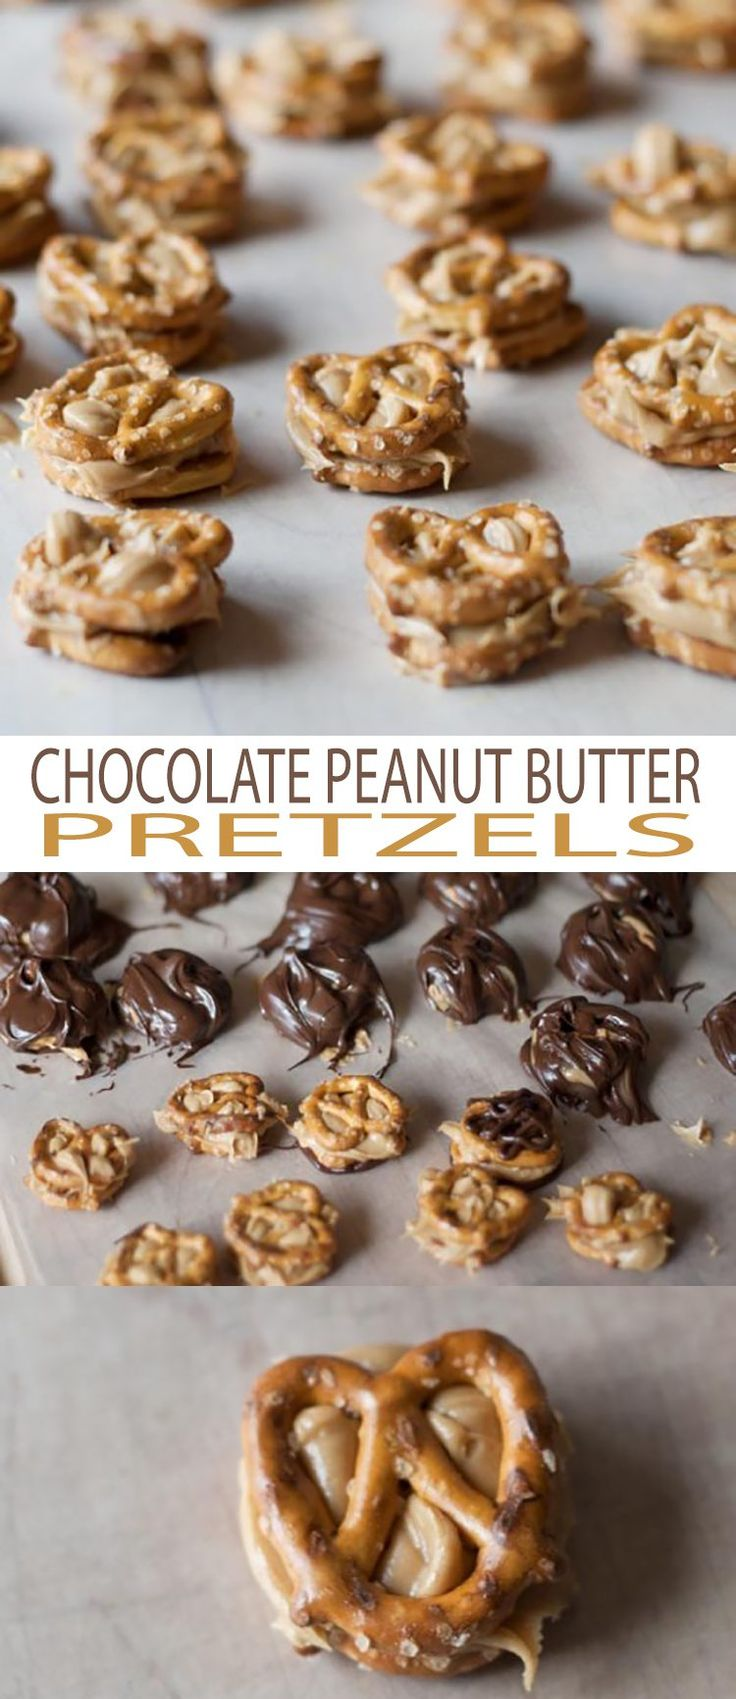 Chocolate Peanut Butter Pretzels are delicious, easy to make and a fun snack to make with kids in the kitchen. Chocolate!!